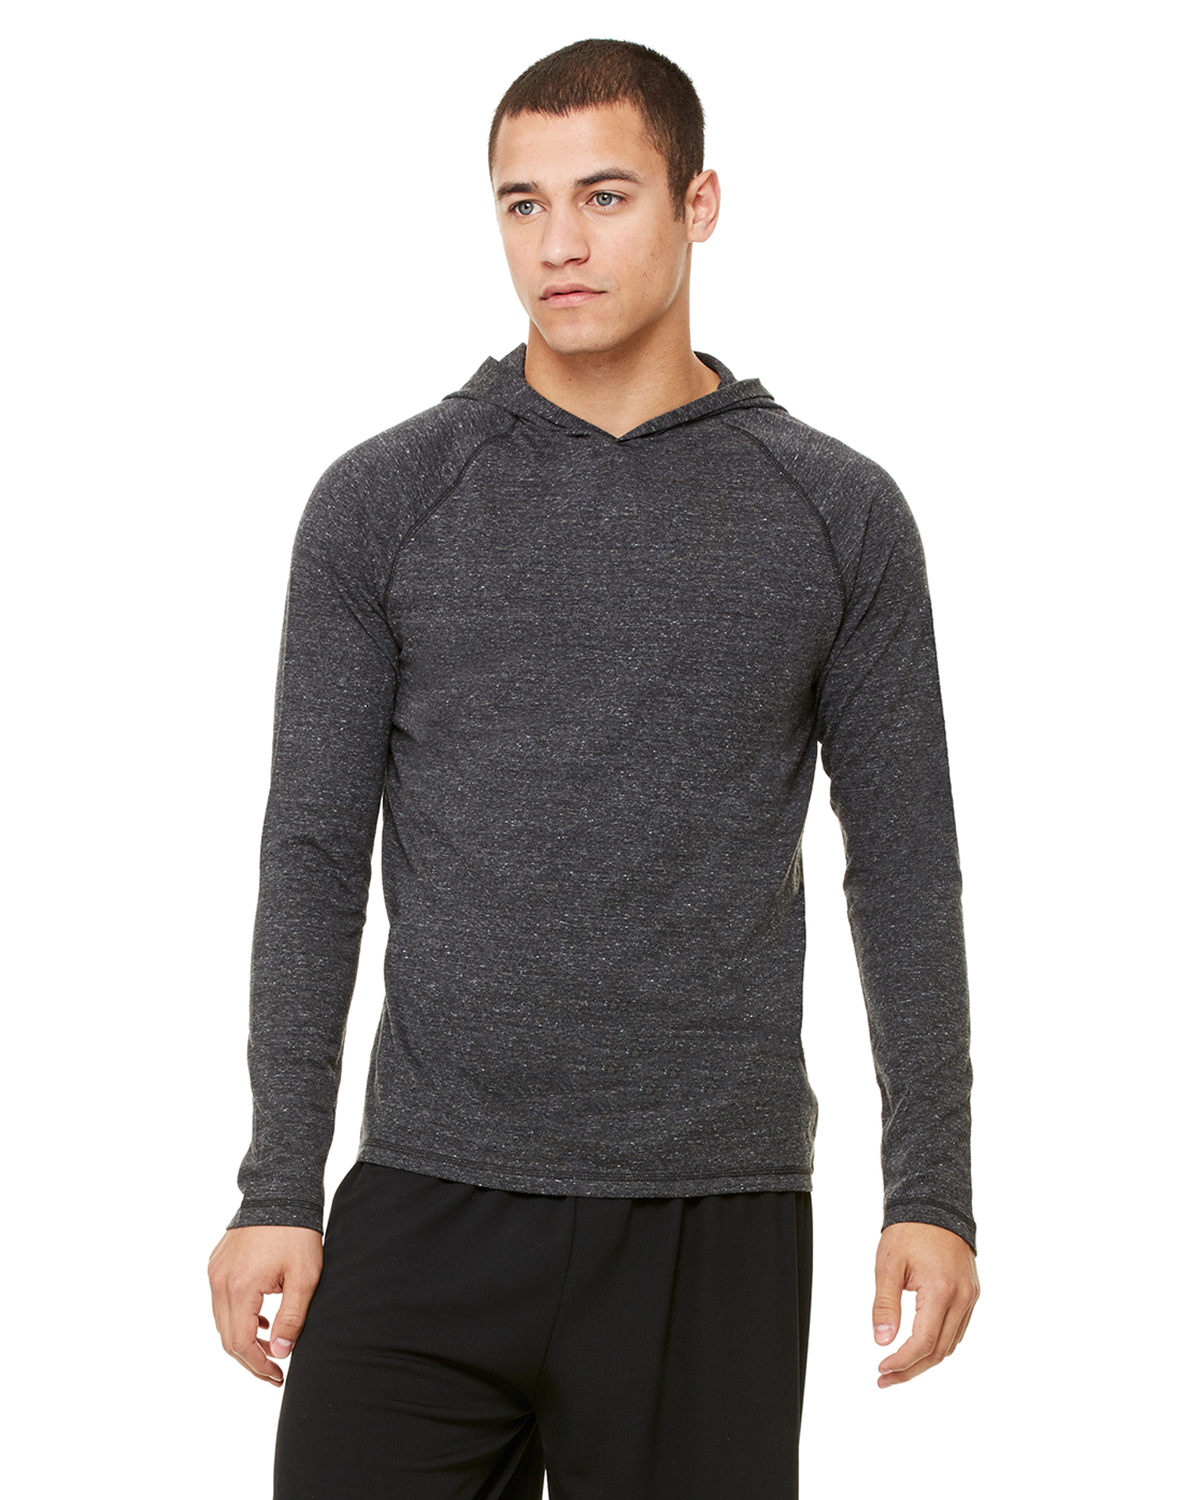 Men's Performance Triblend Long-Sleeve Hooded Pullover